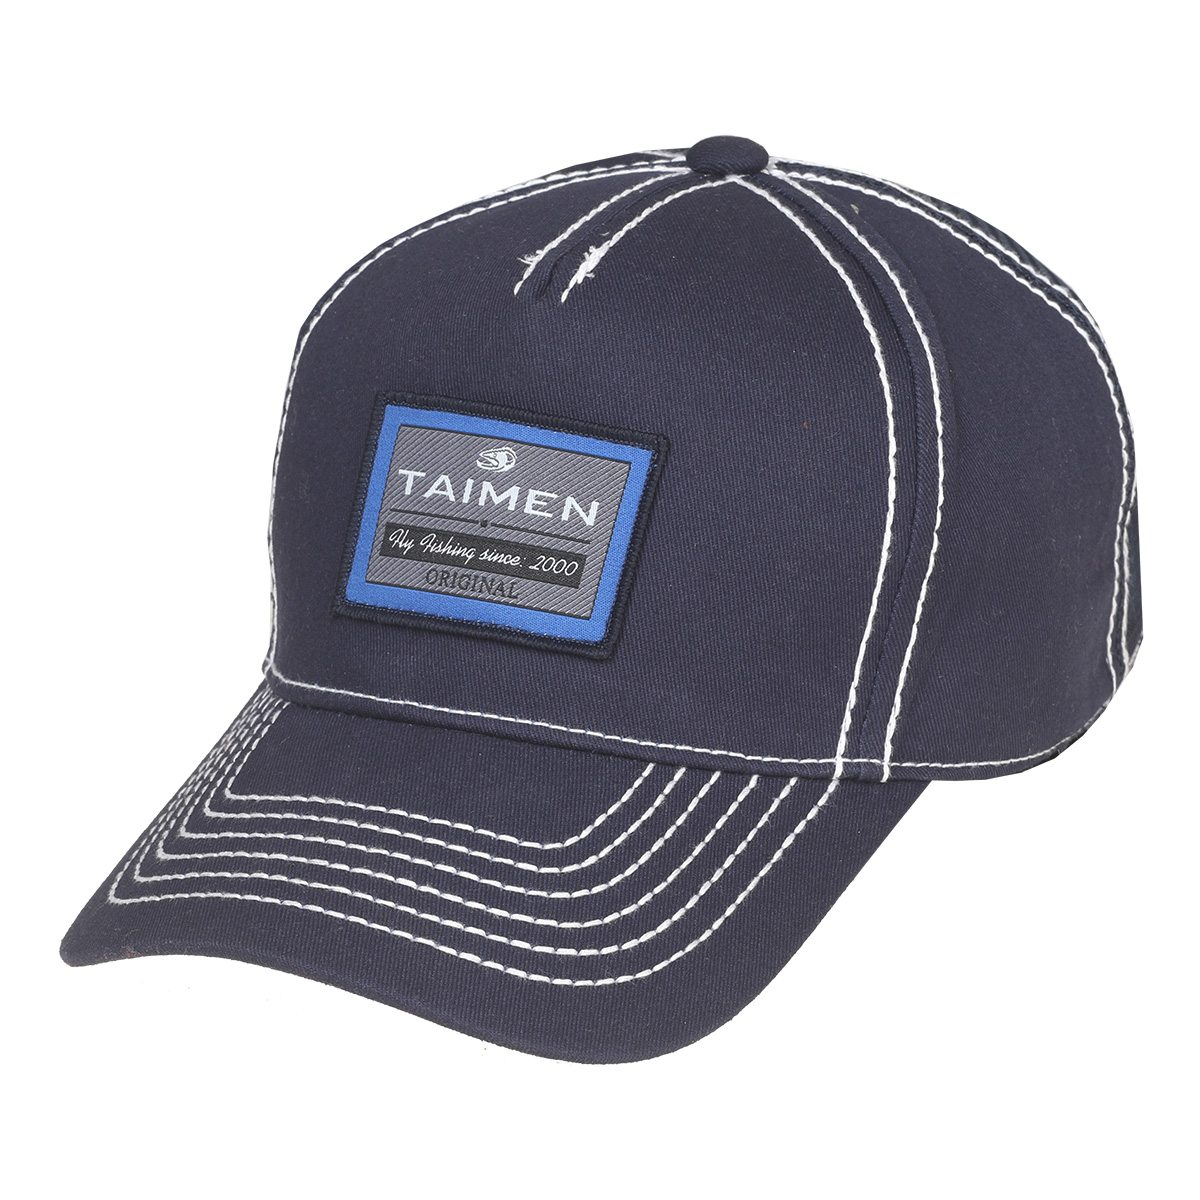 Taimen Fishing Orginal Trucker